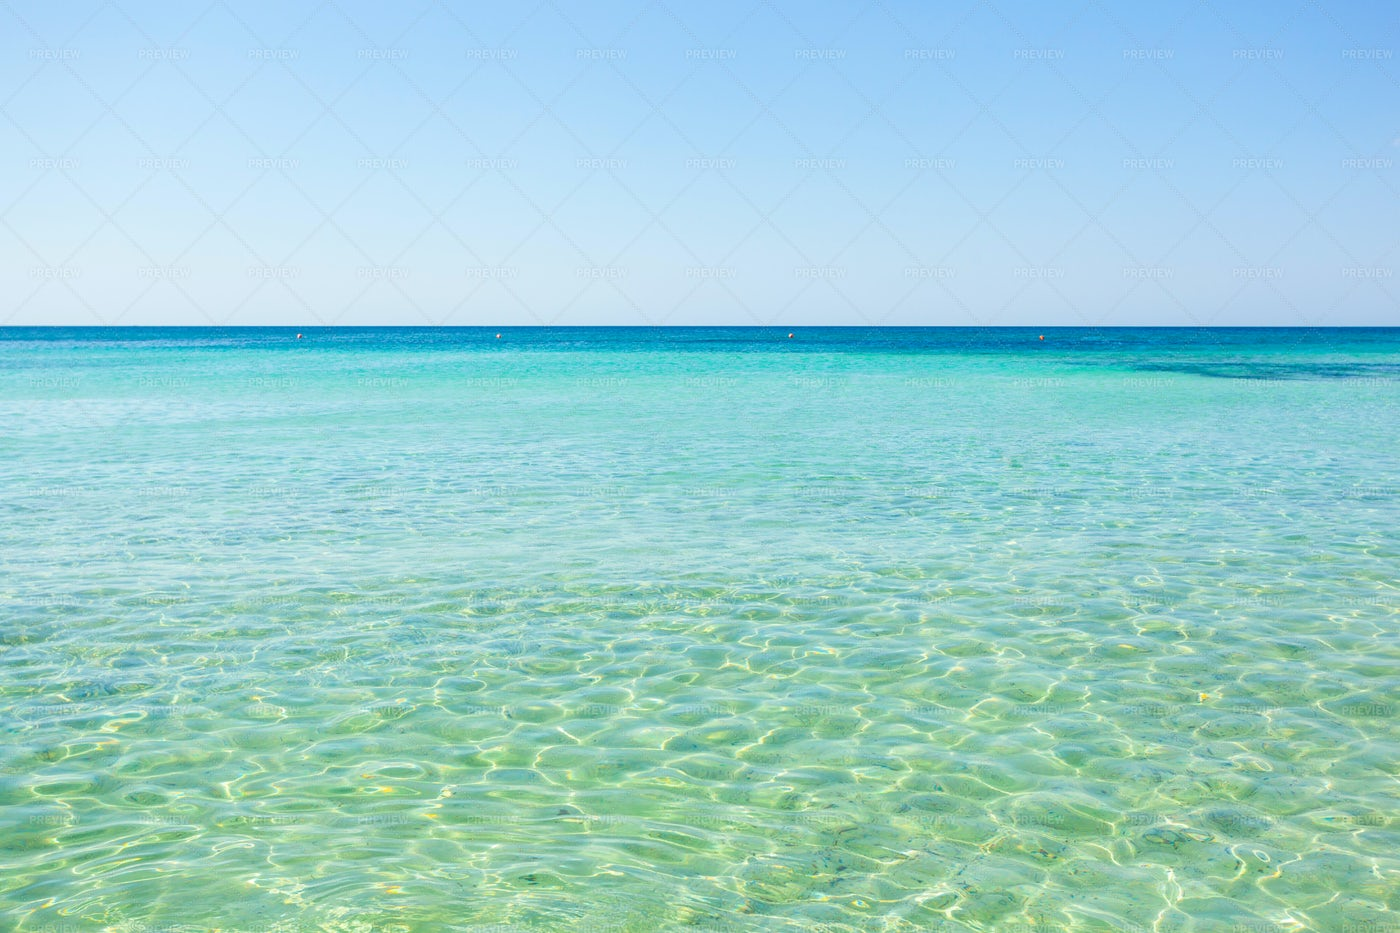 Turquoise And Blue Water Sea: Stock Photos